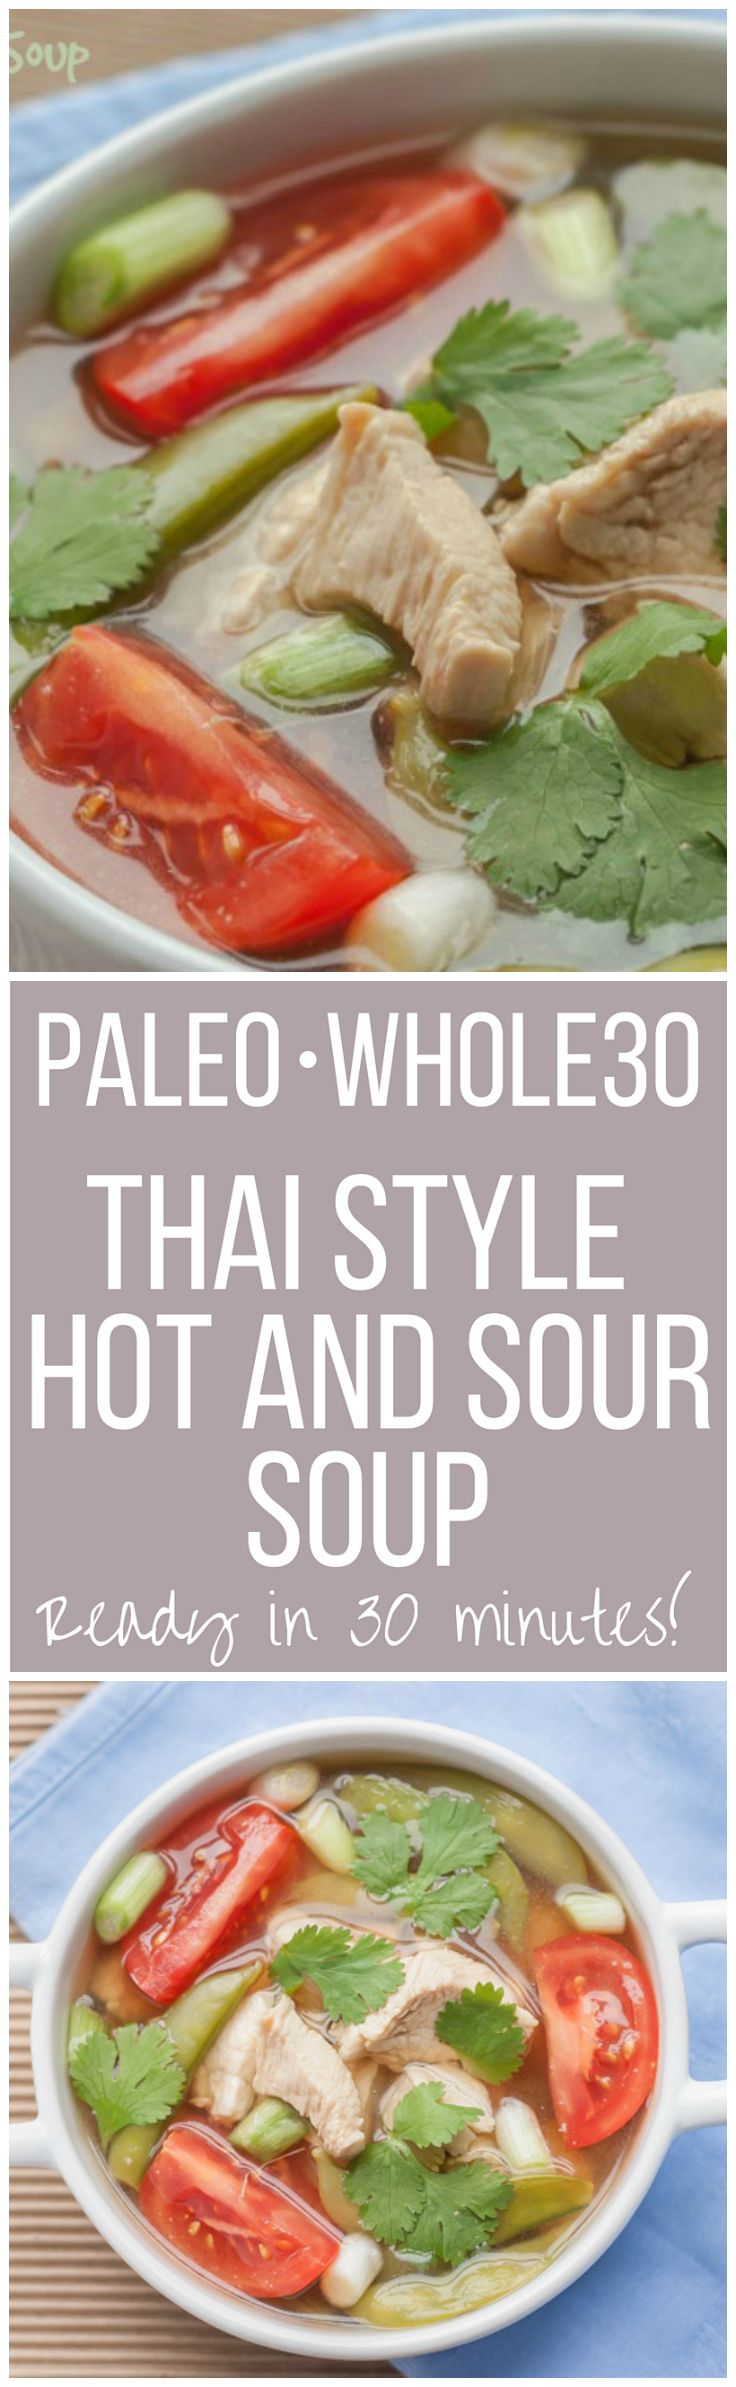 You'll love my Thai Style Paleo Hot and Sour soup, it's so delicious, you can make it in 30 minutes and it is also Whole 30 compliant.